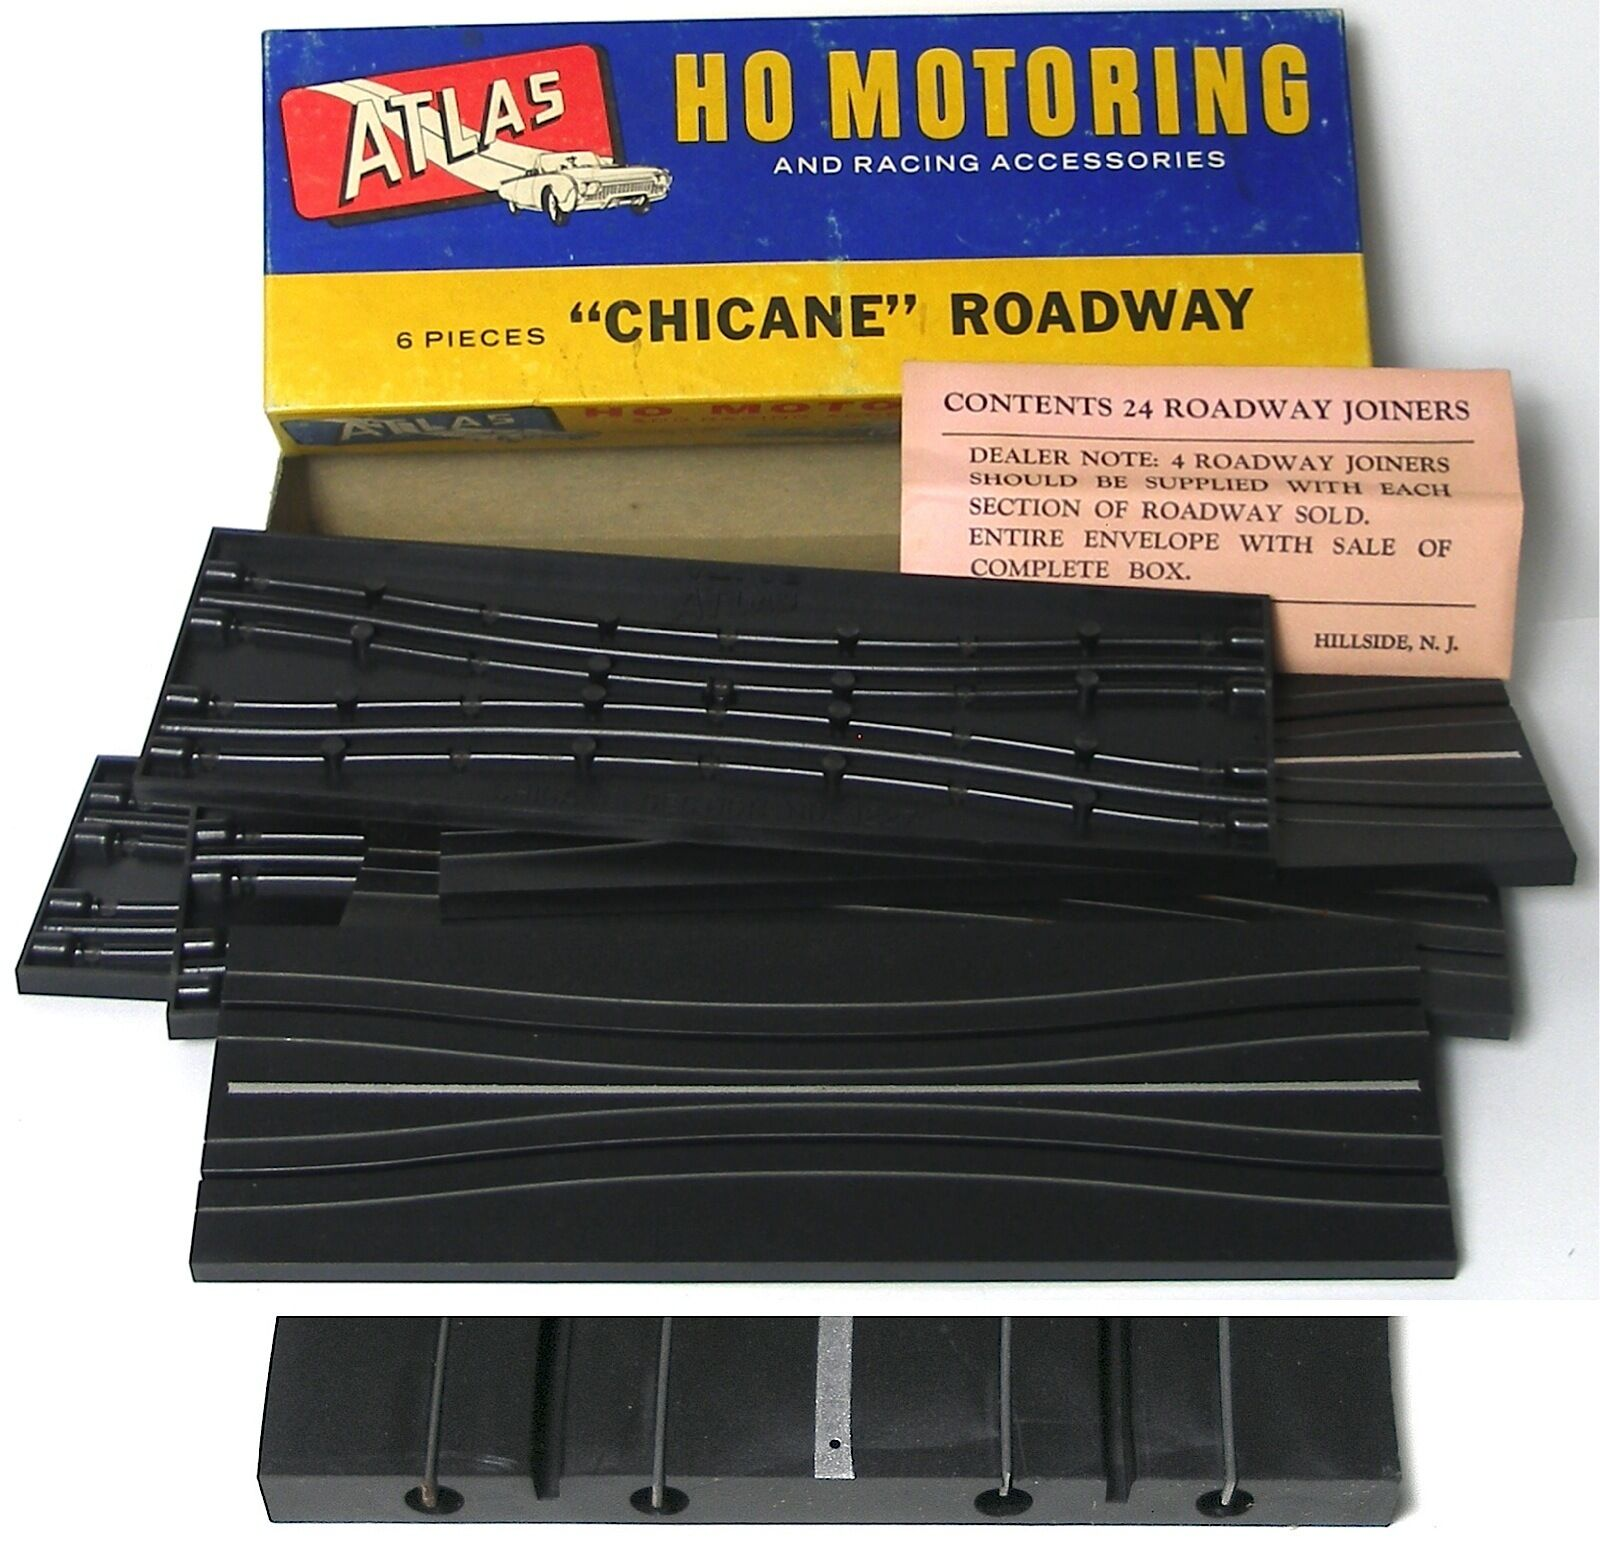 6pc 1963 Atlas HO Slot Car Race Track 9 Straight Chicane Roadway ...